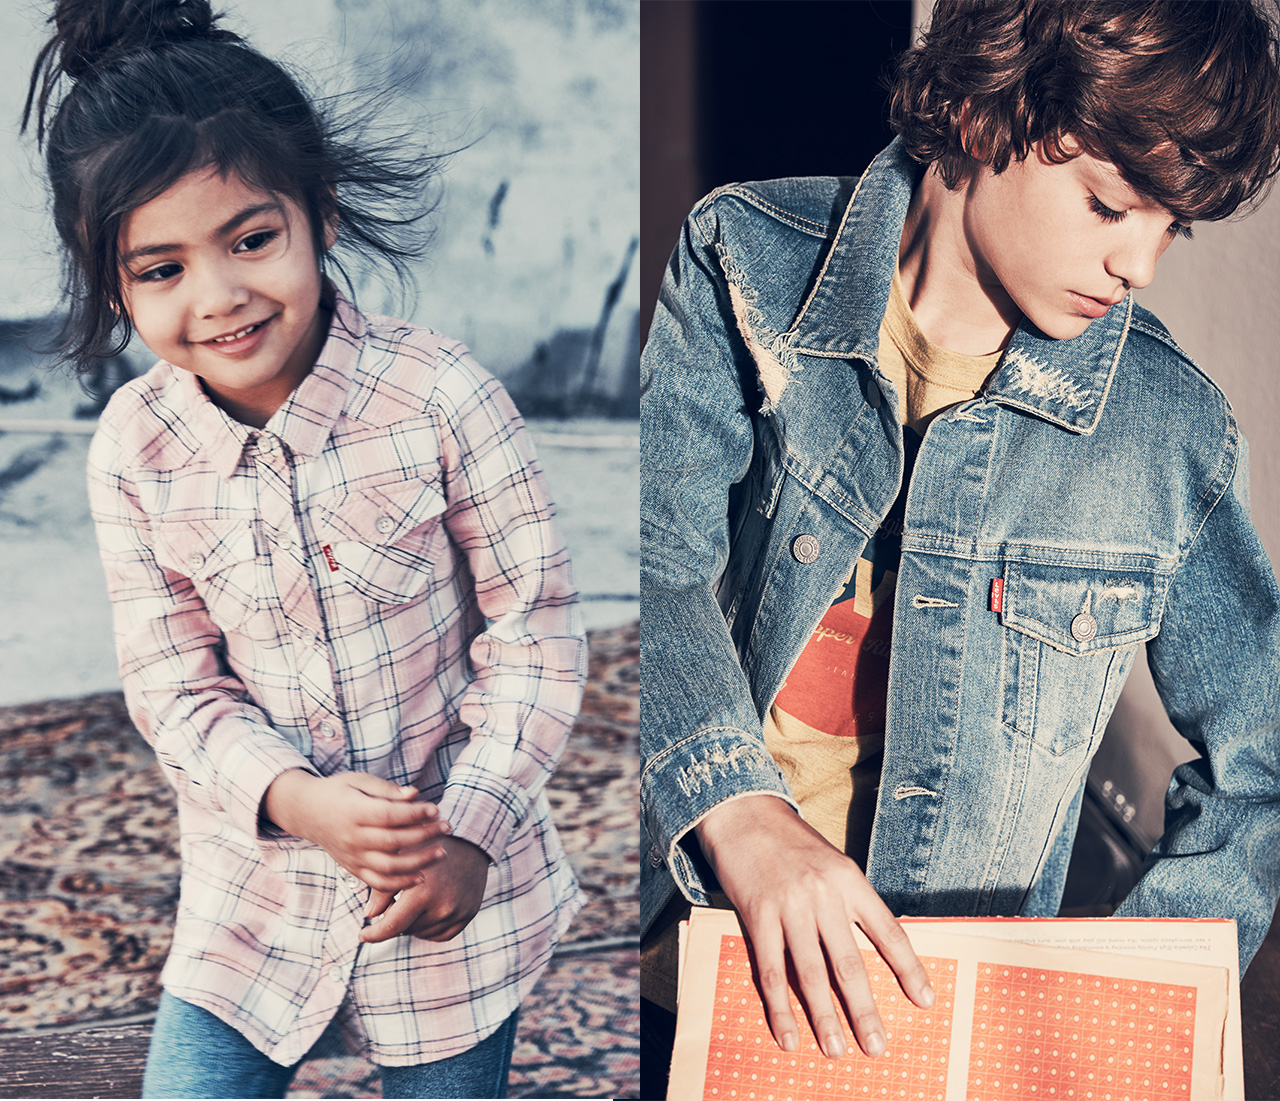 Plaids, jackets and jeans for the little ones. Shop kids